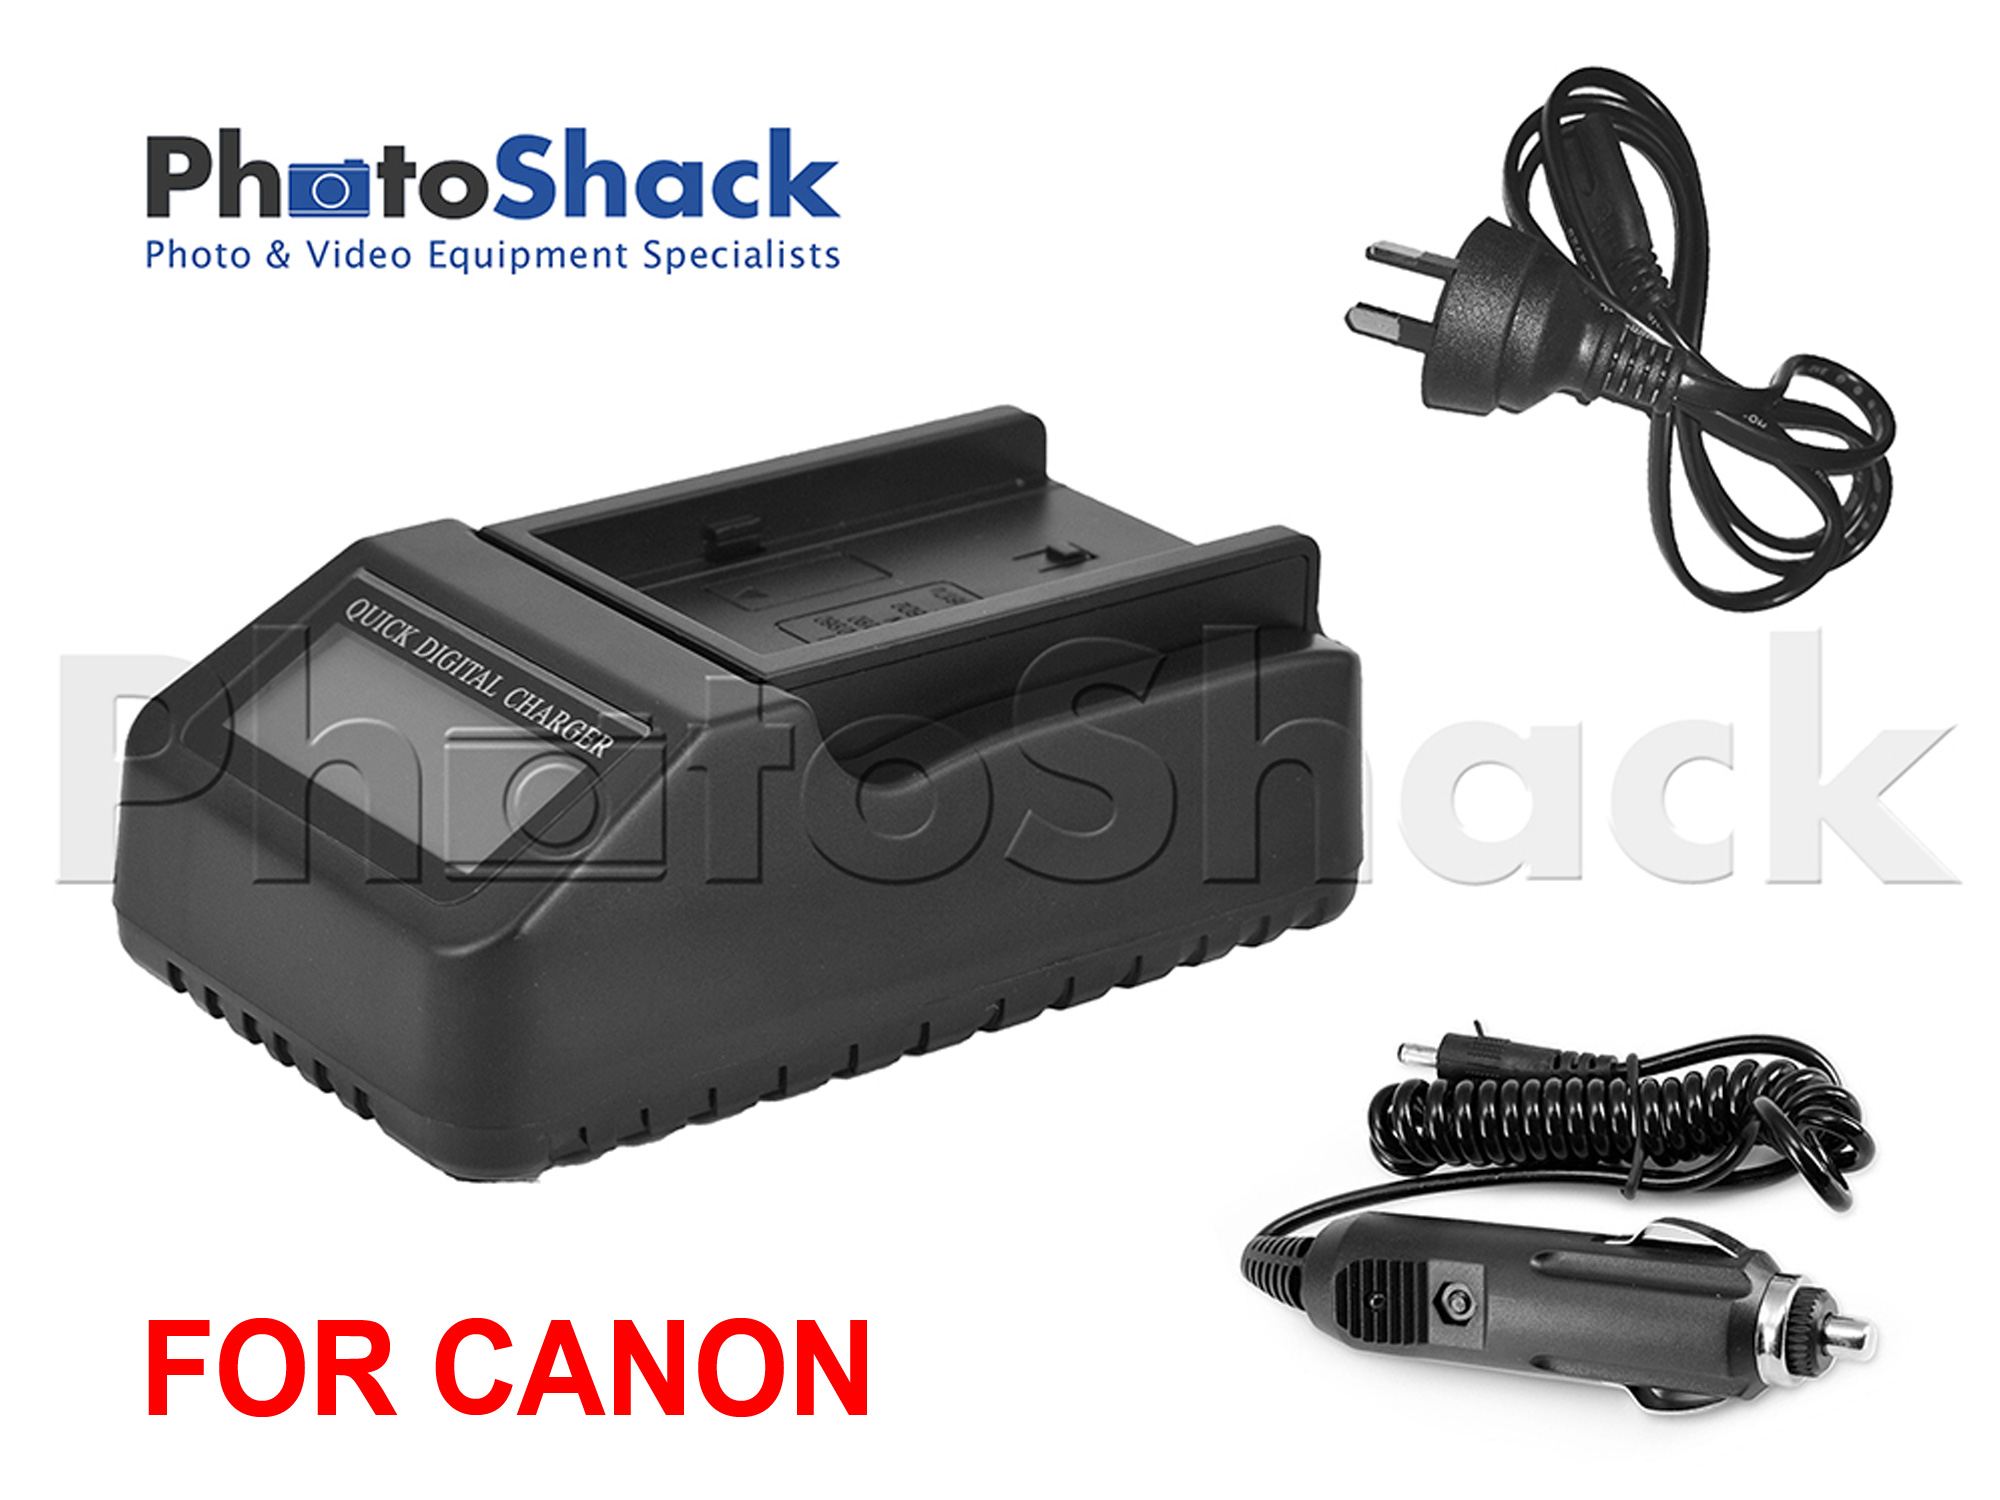 Multifunction Digital Charger with LCD Display For Canon